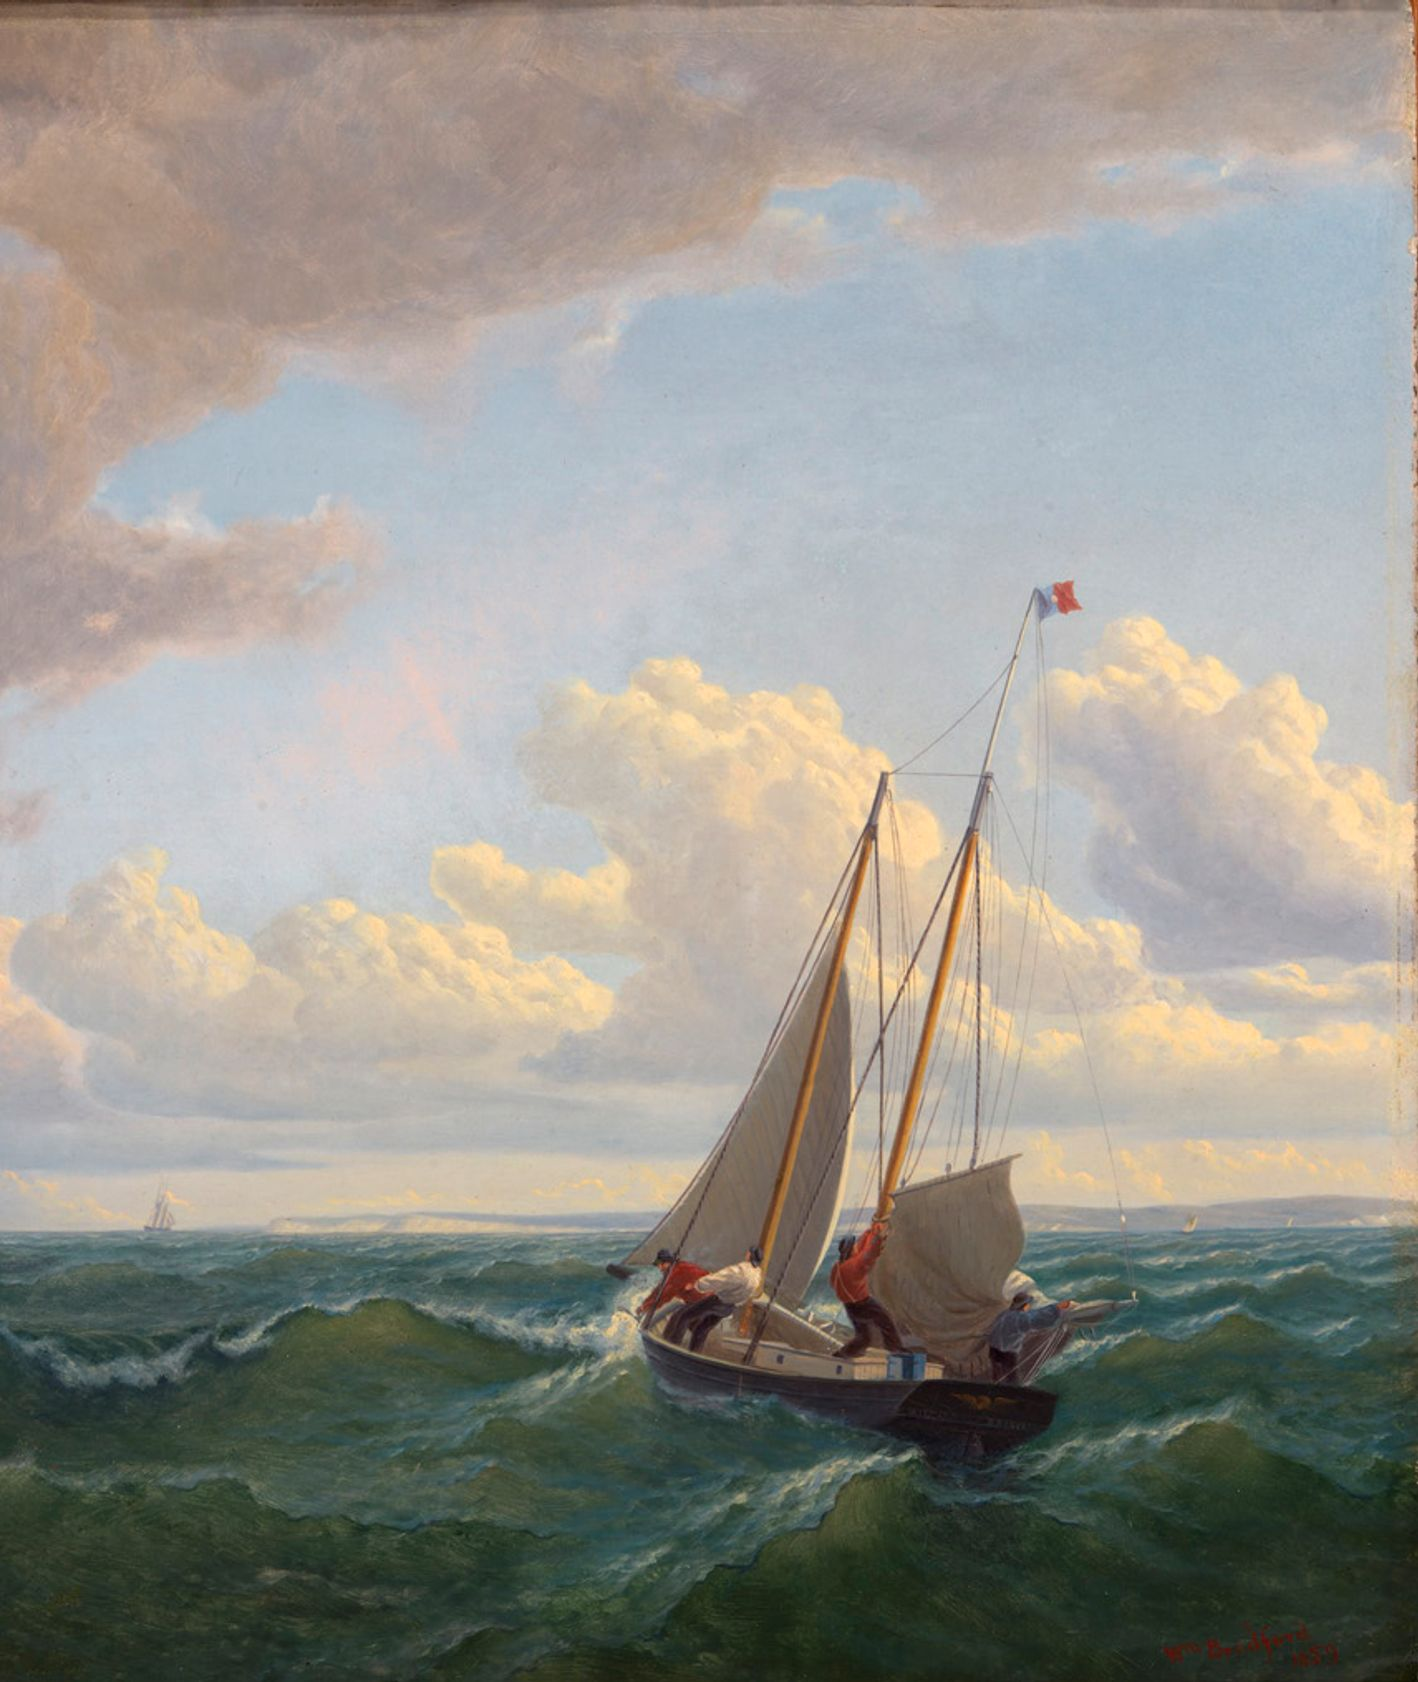 Whaler off the Vineyard–Outward Bound, obraz Williama Bradforda, 1859, Smithsonian American Art Museum, Museum purchase